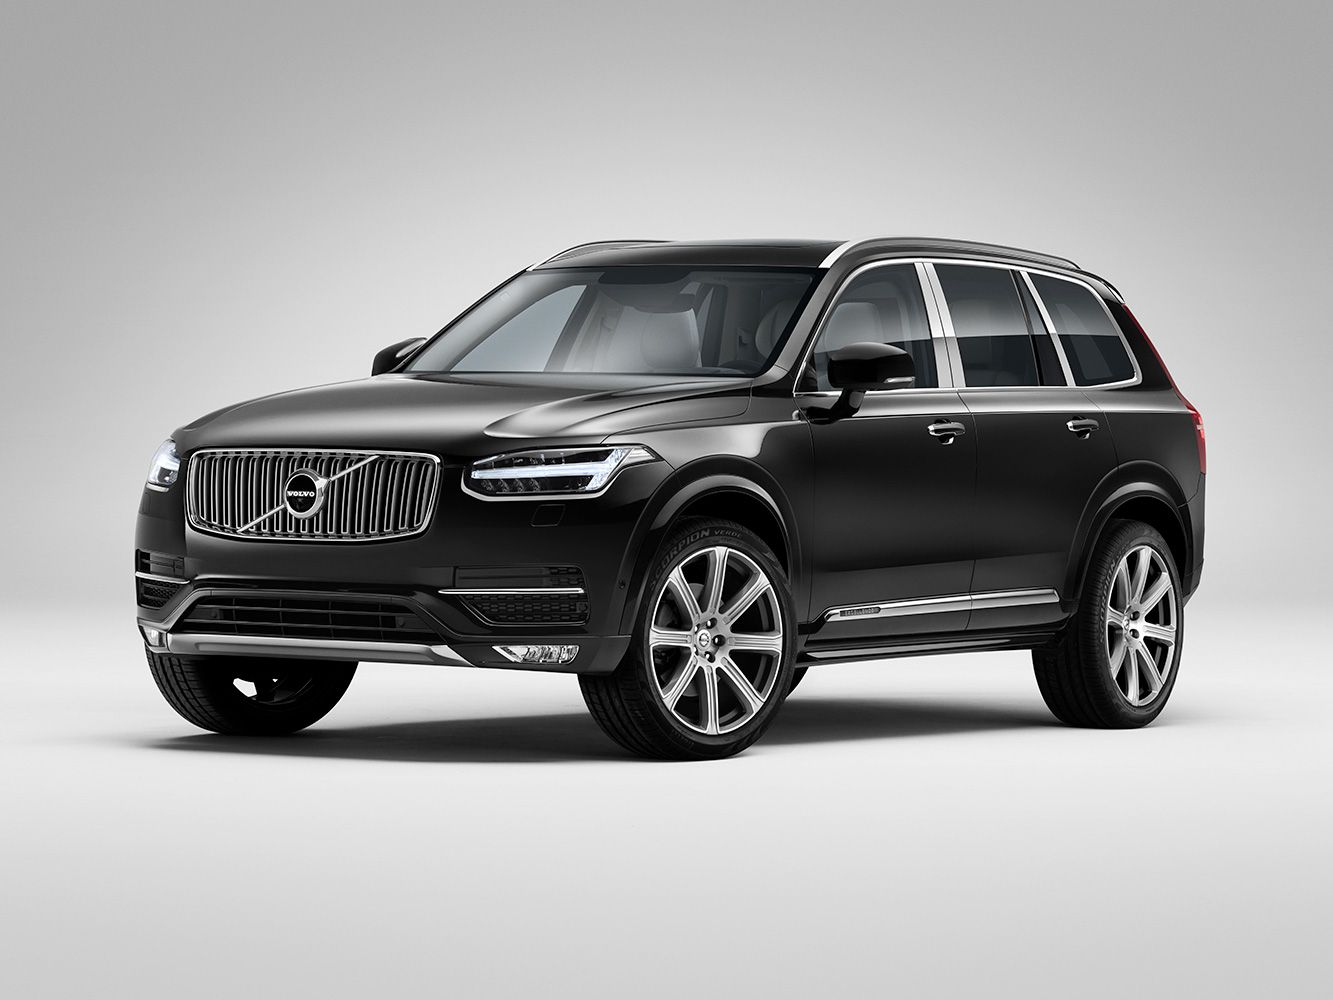 VOL-XC90-excellence